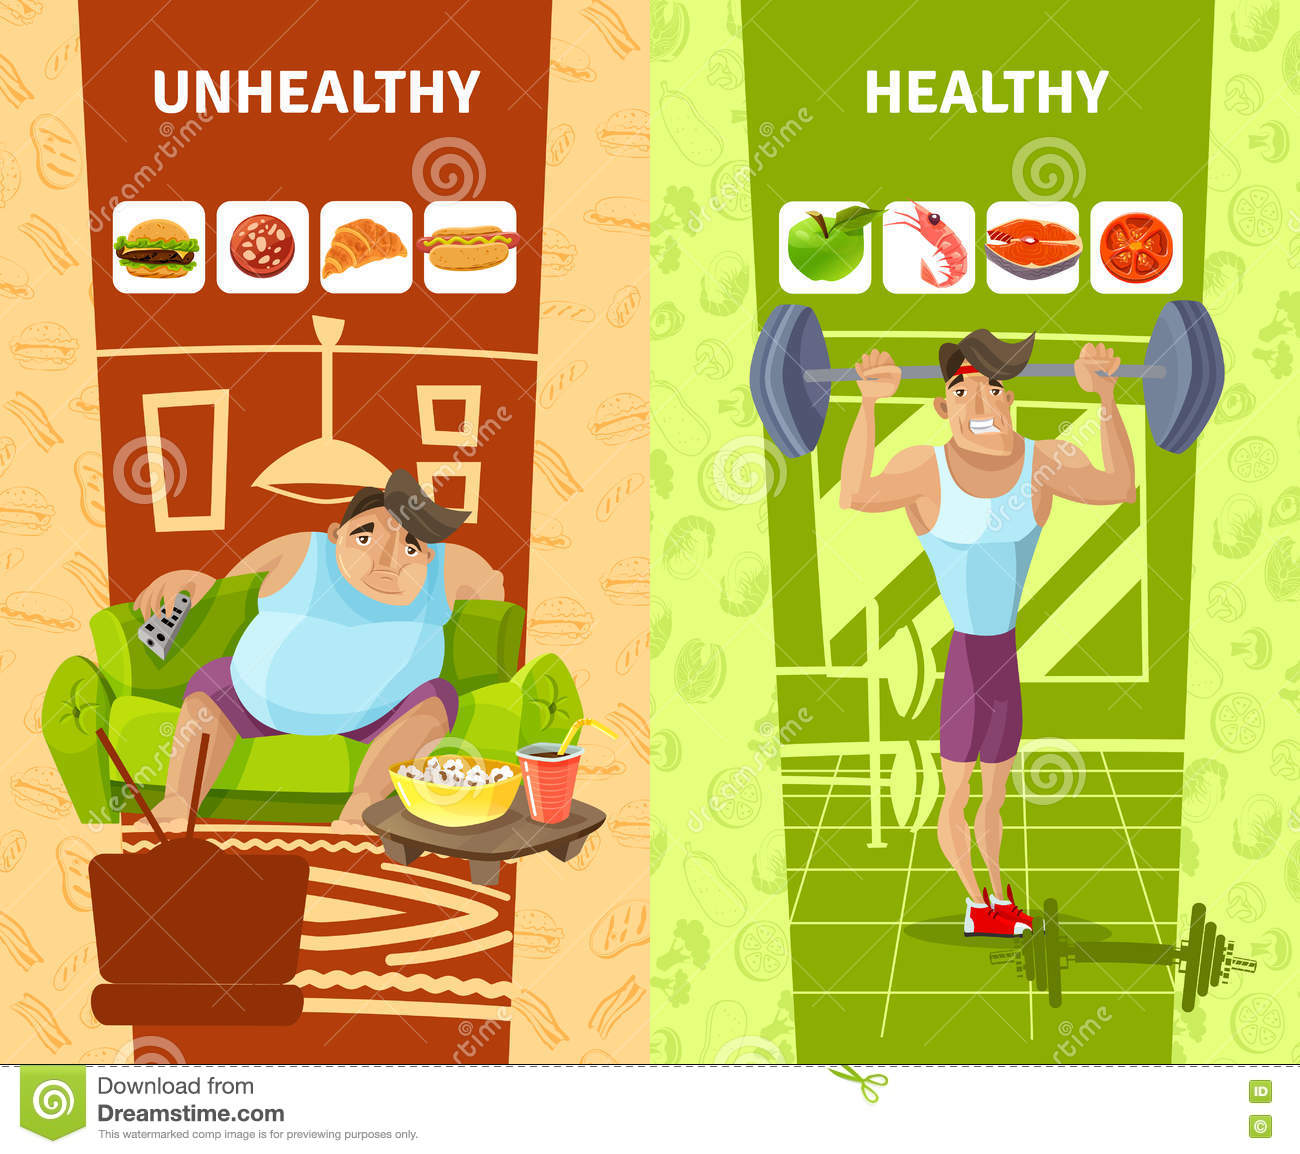 Healthy and unhealthy people